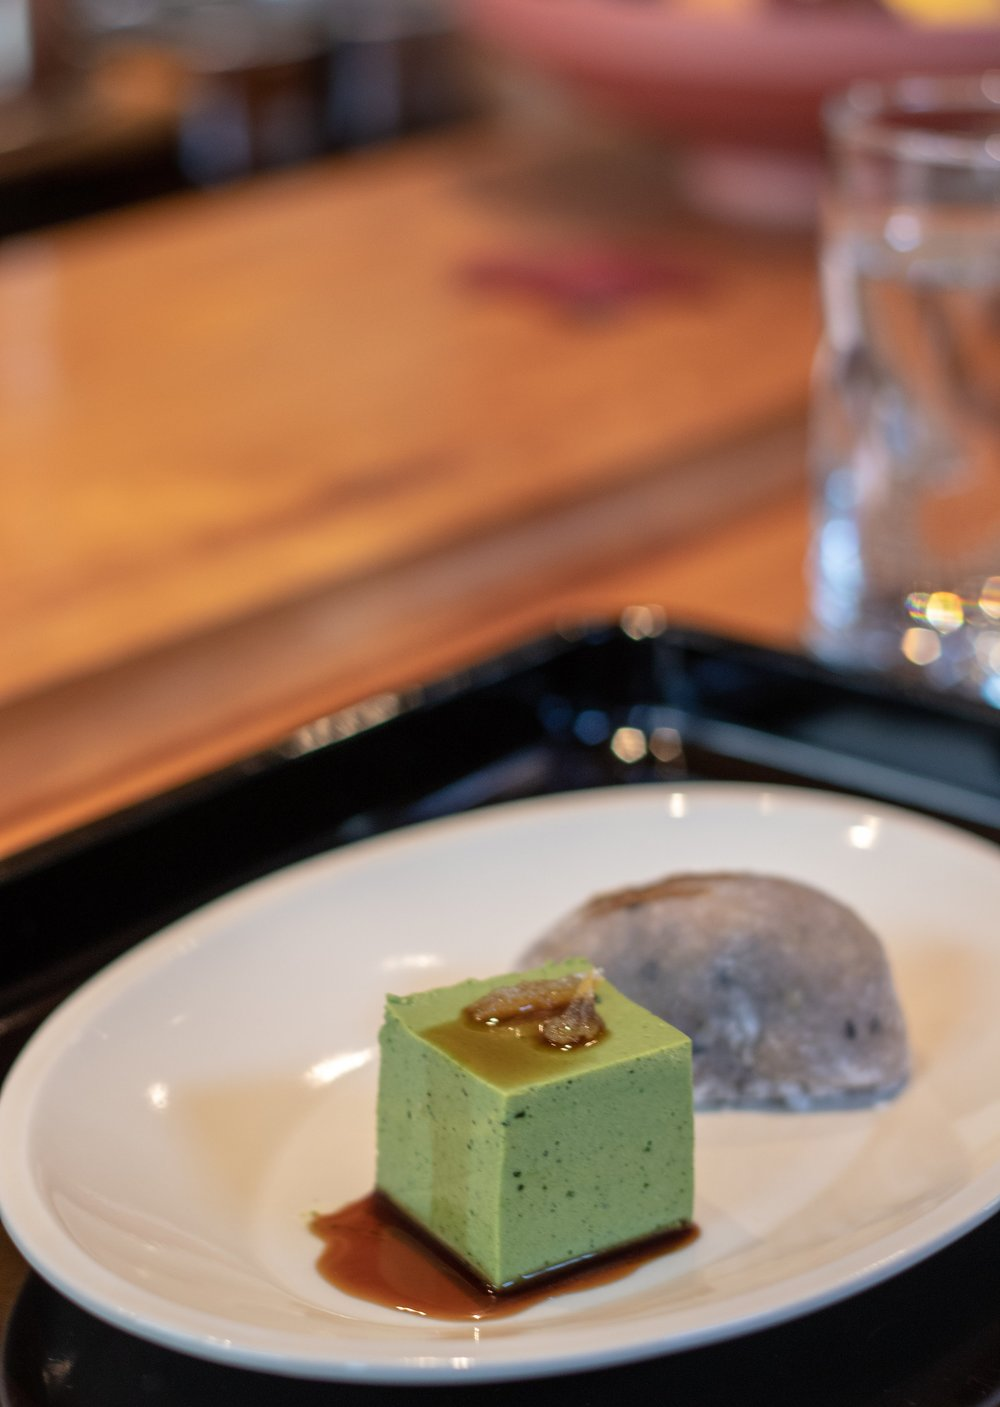 Oyatsuya dessert and snack tasting with tea pairing, blog post by The Tea Squirrel